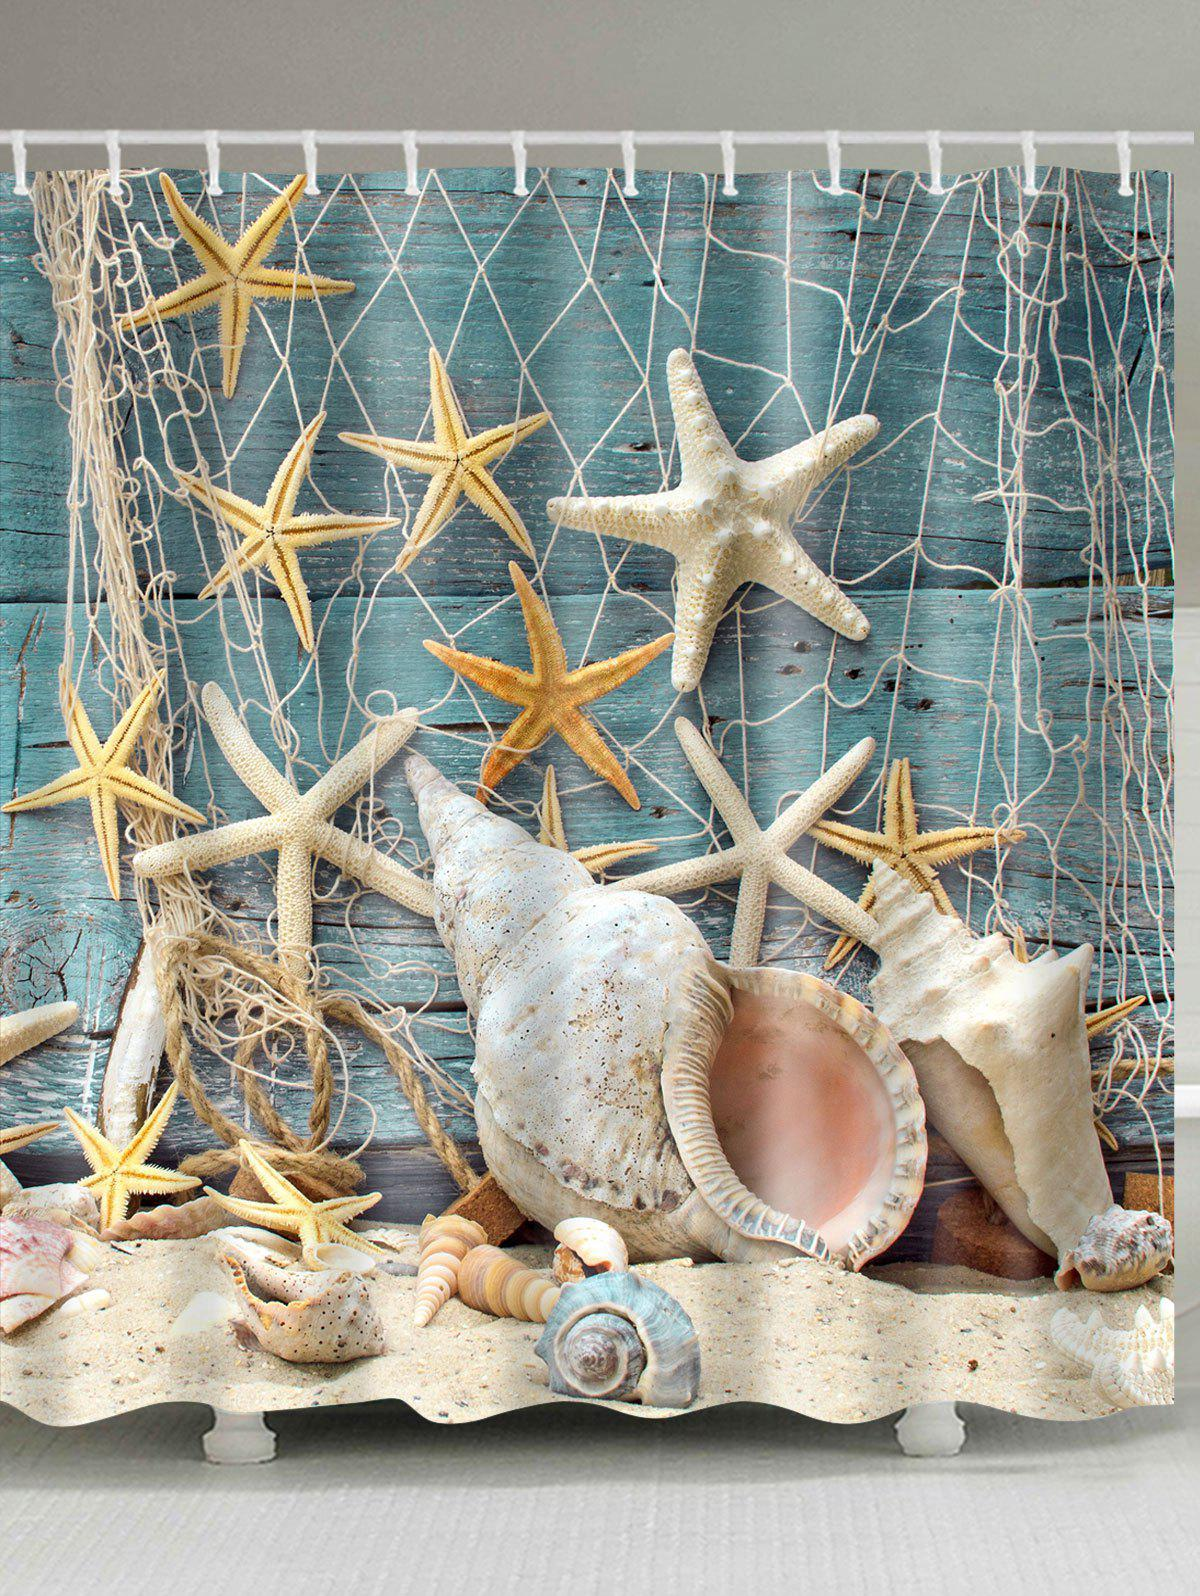 Online Waterproof Starfish and Shell Printed Bath Shower Curtain